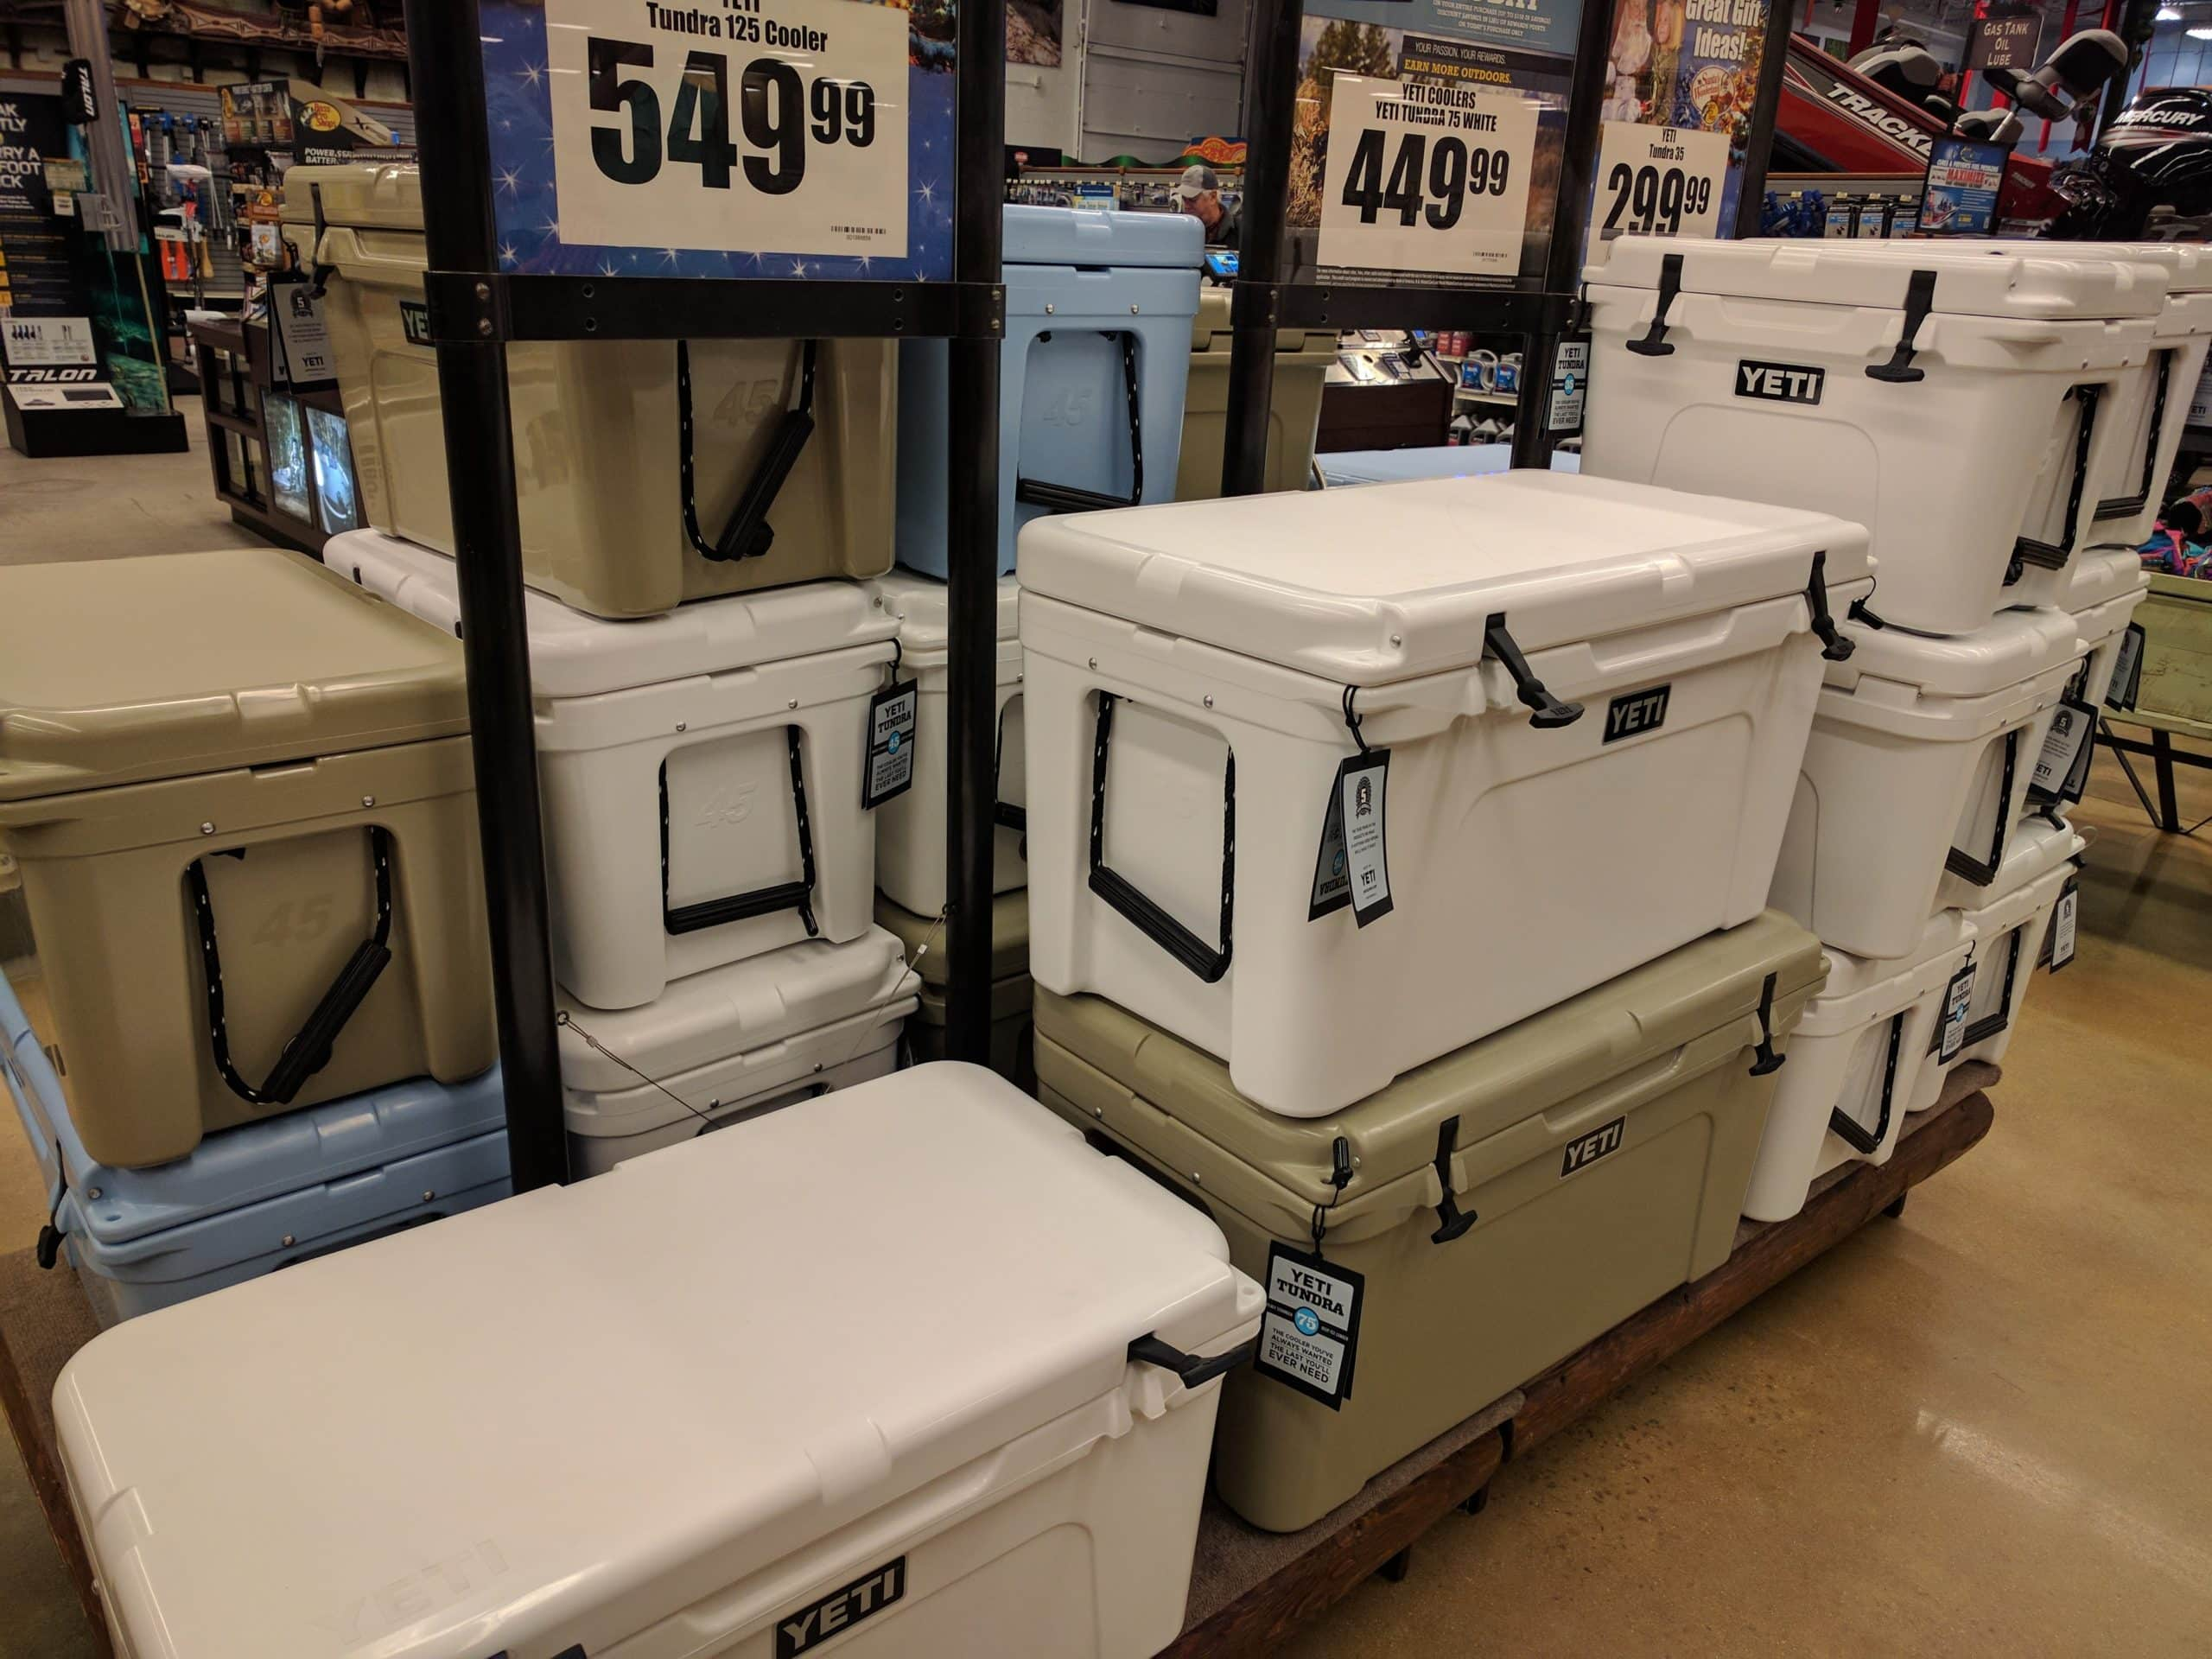 Cooler Showdown: Yeti Cooler vs RTIC Cooler